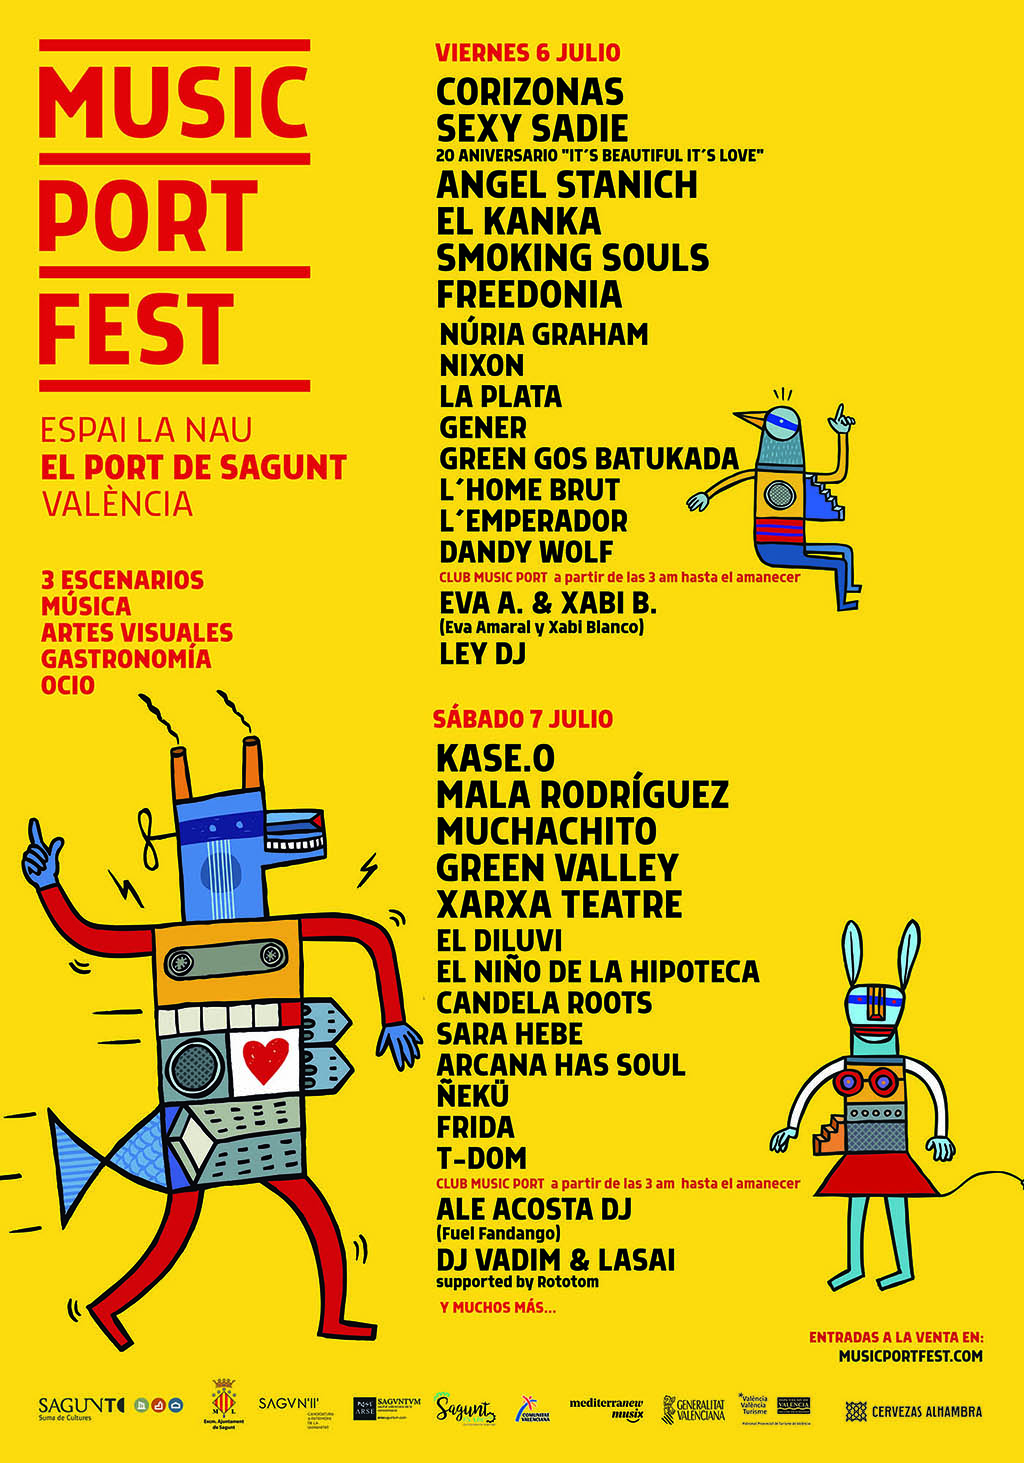 Music Port Fest cartel.lecoolvalenciajpg